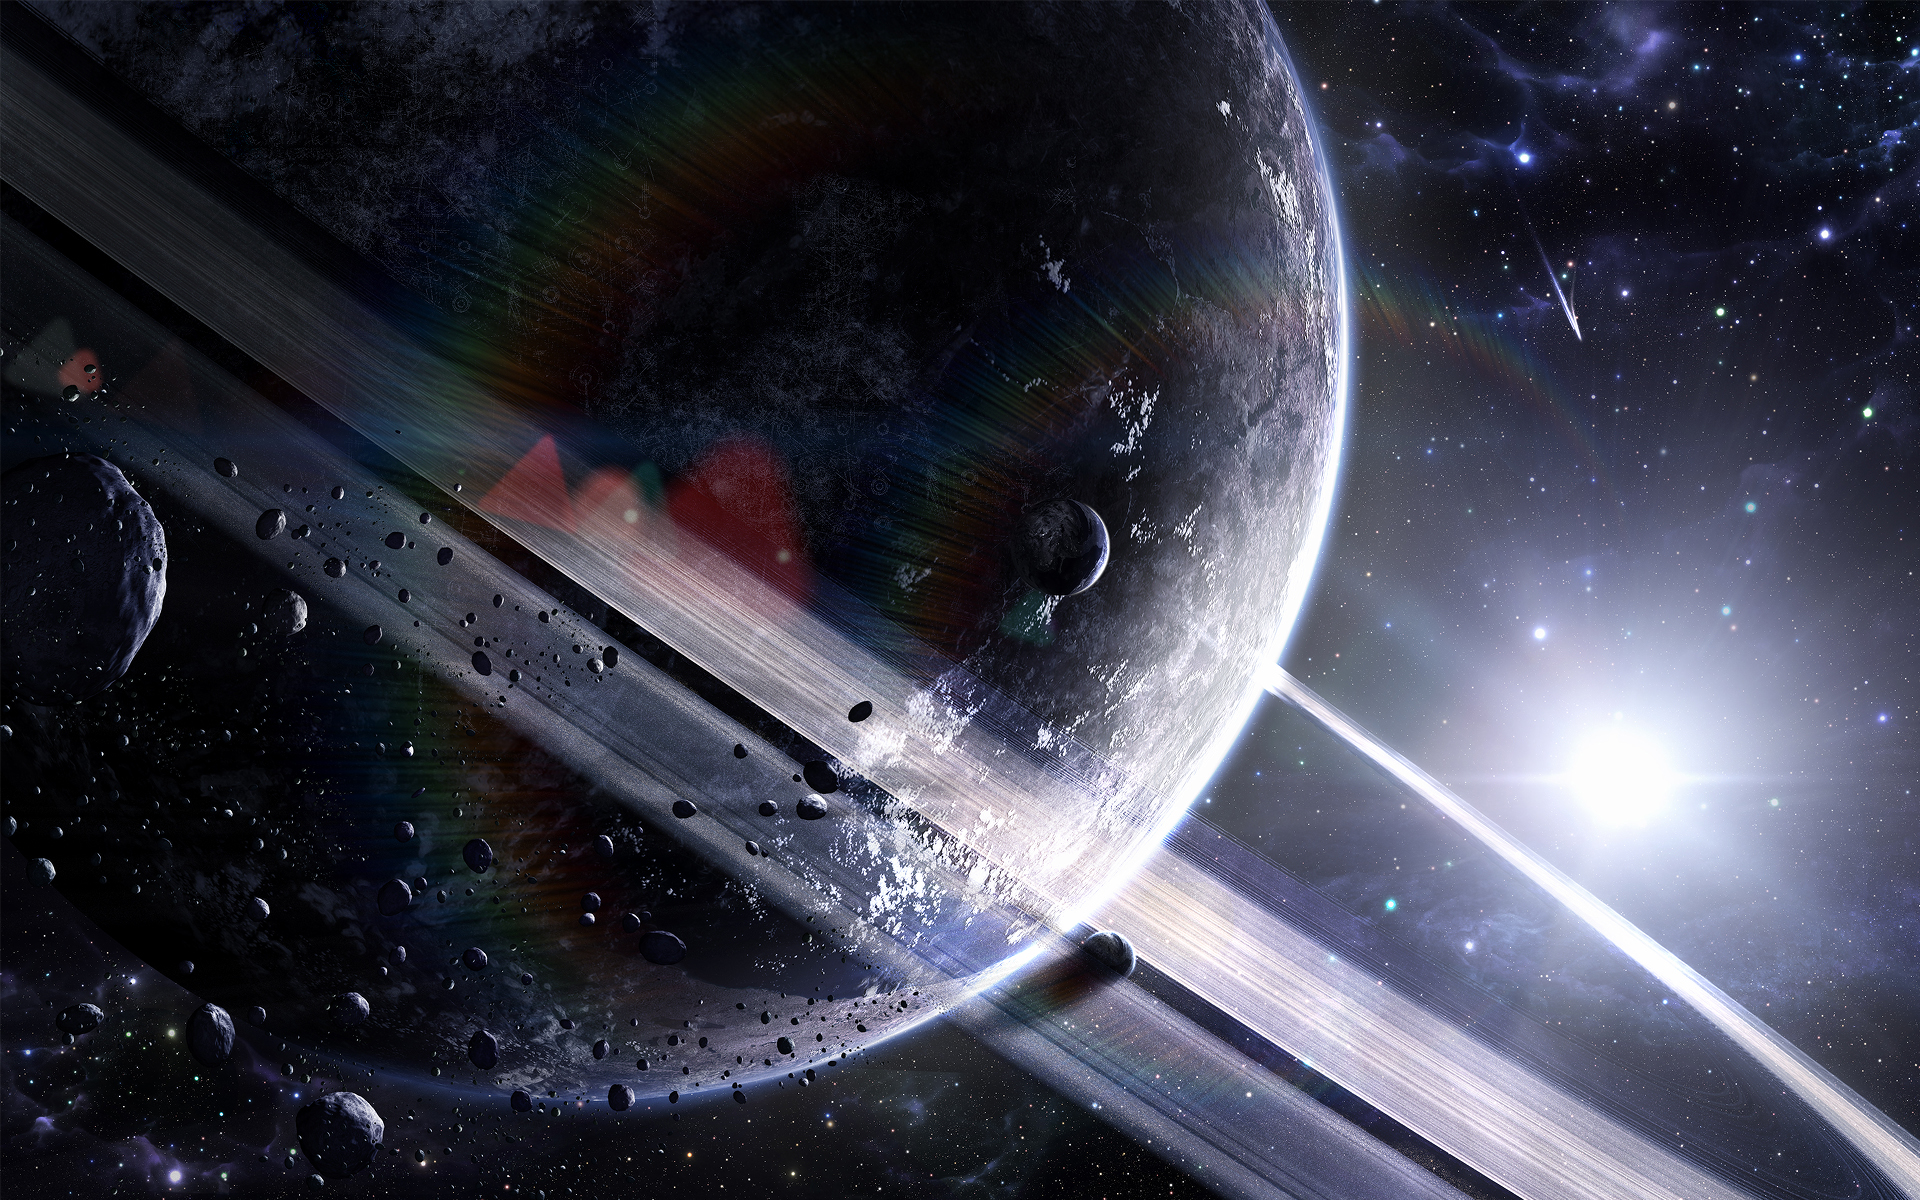 Space Hd Wallpapers 1080P wallpaper   567538 1920x1200